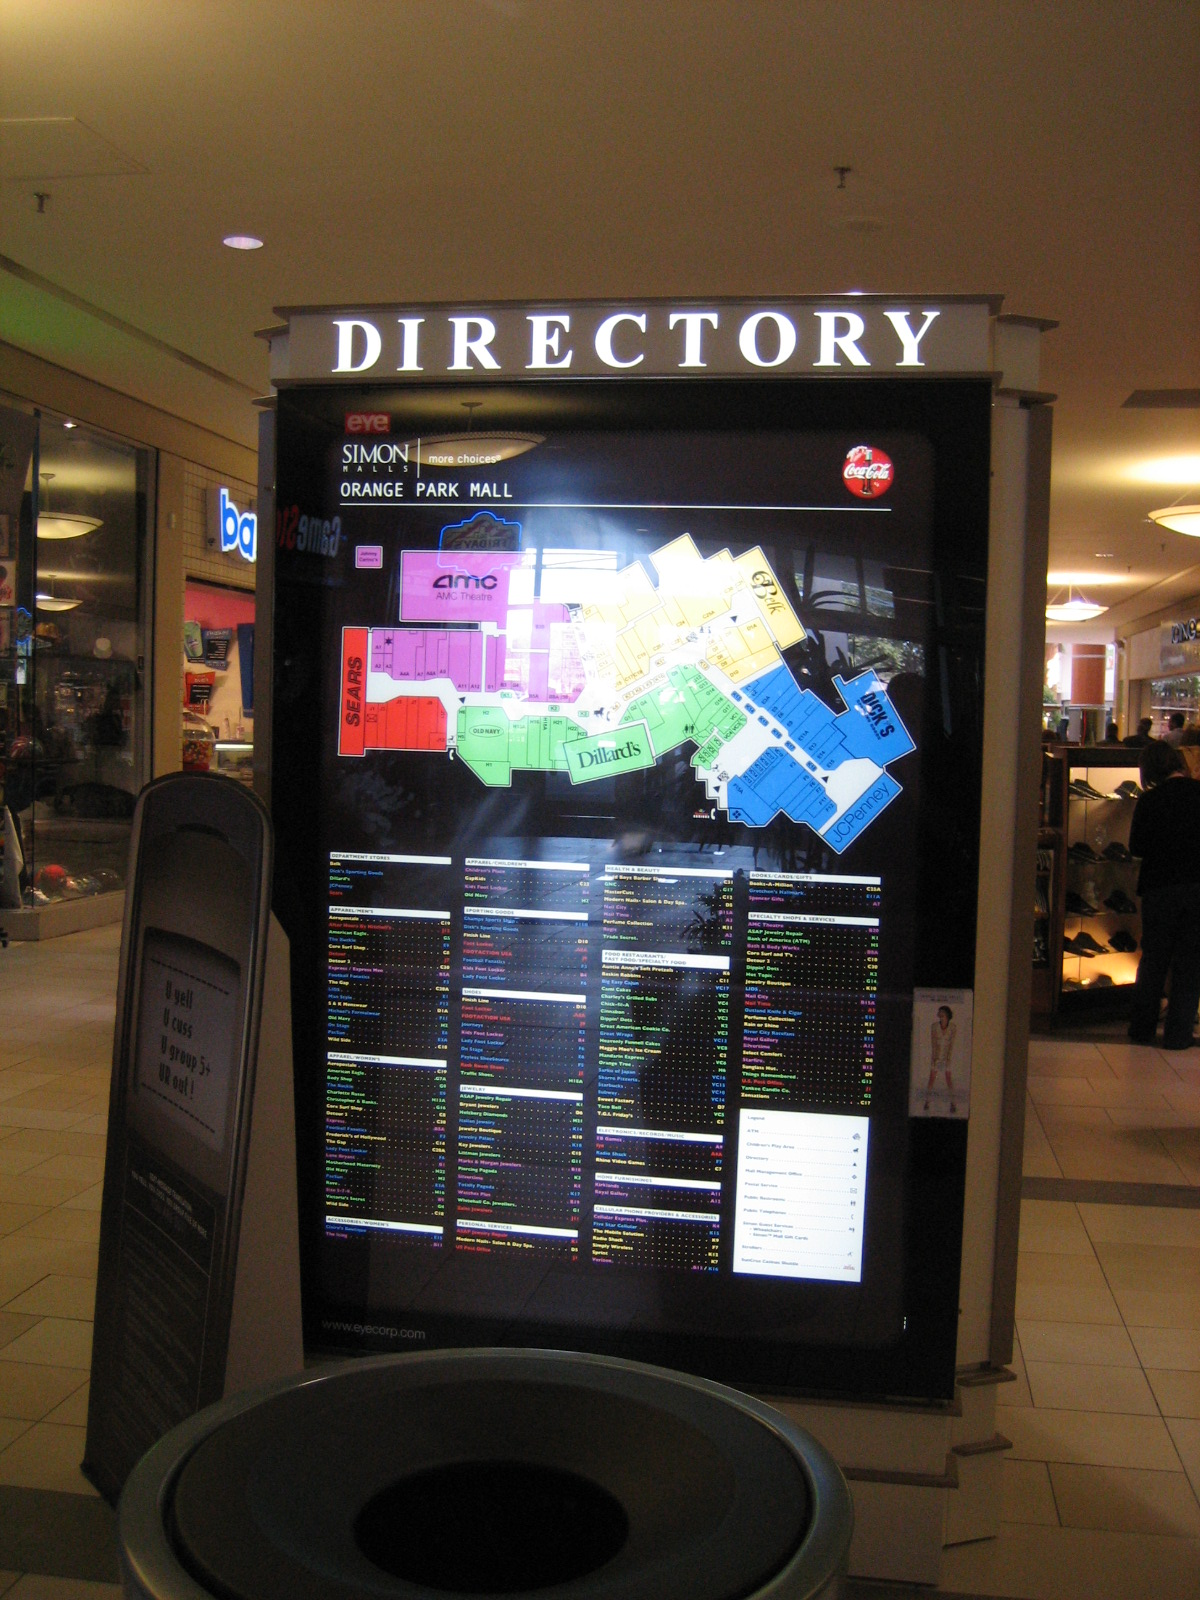 Orange Park Mall directory in Orange Park, FL